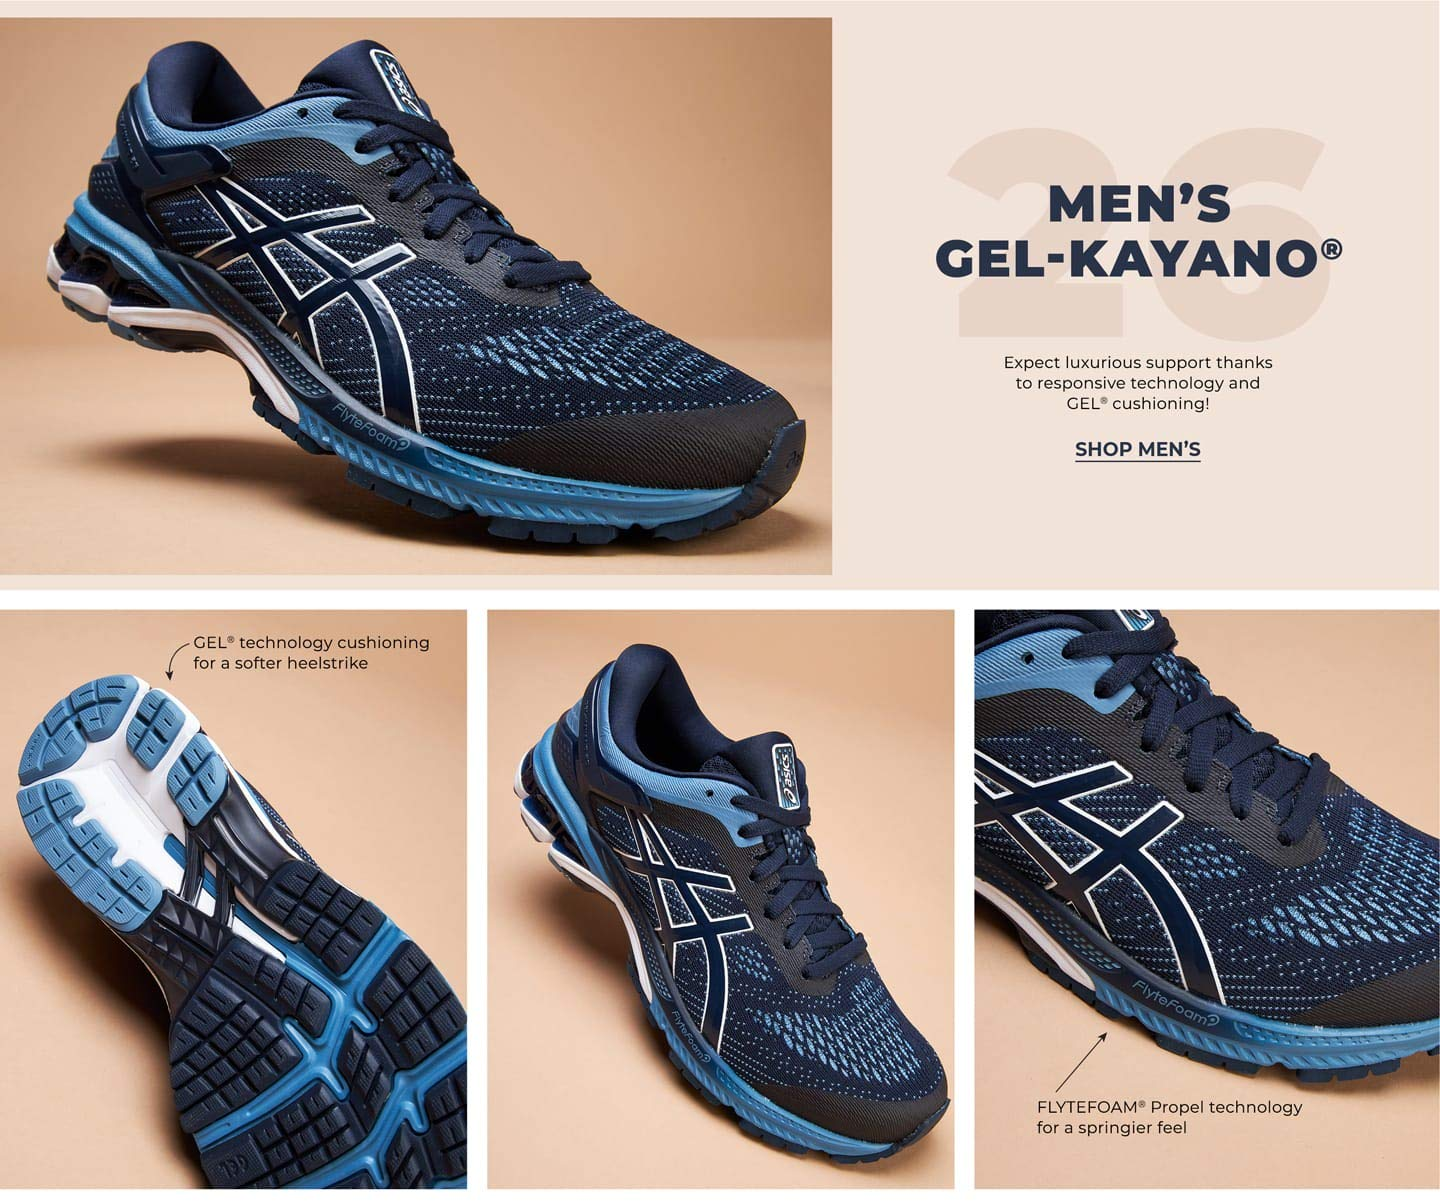 Men's GEL-Kayano™ 26. Expect luxurious support thanks to responsive technology and GEL™ cushioning! Shop Men's. FLYTEFOAM™ Propel technology for a springier feel. GEL™ technology cushioning for a softer heelstrike.